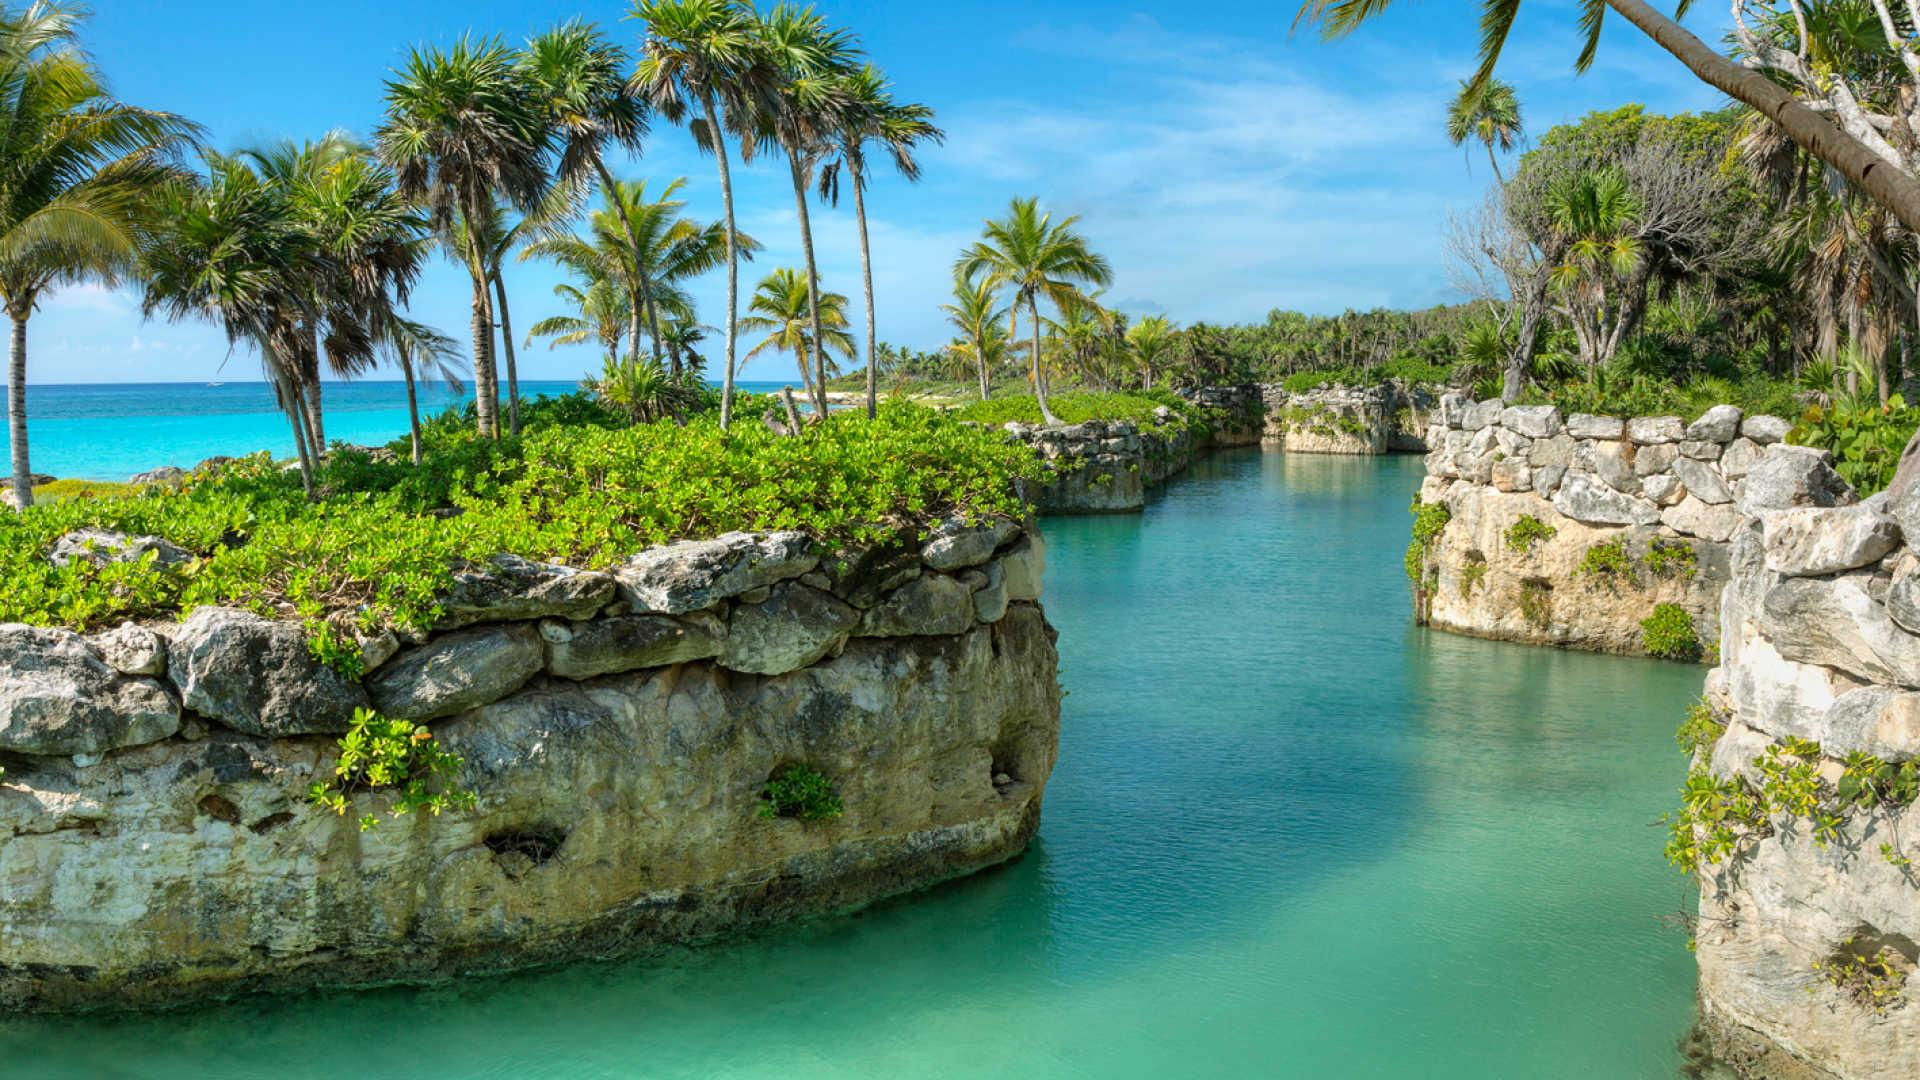 Hotel Xcaret Mexico – Riviera Maya – Xcaret Hotel Resort All Inclusive